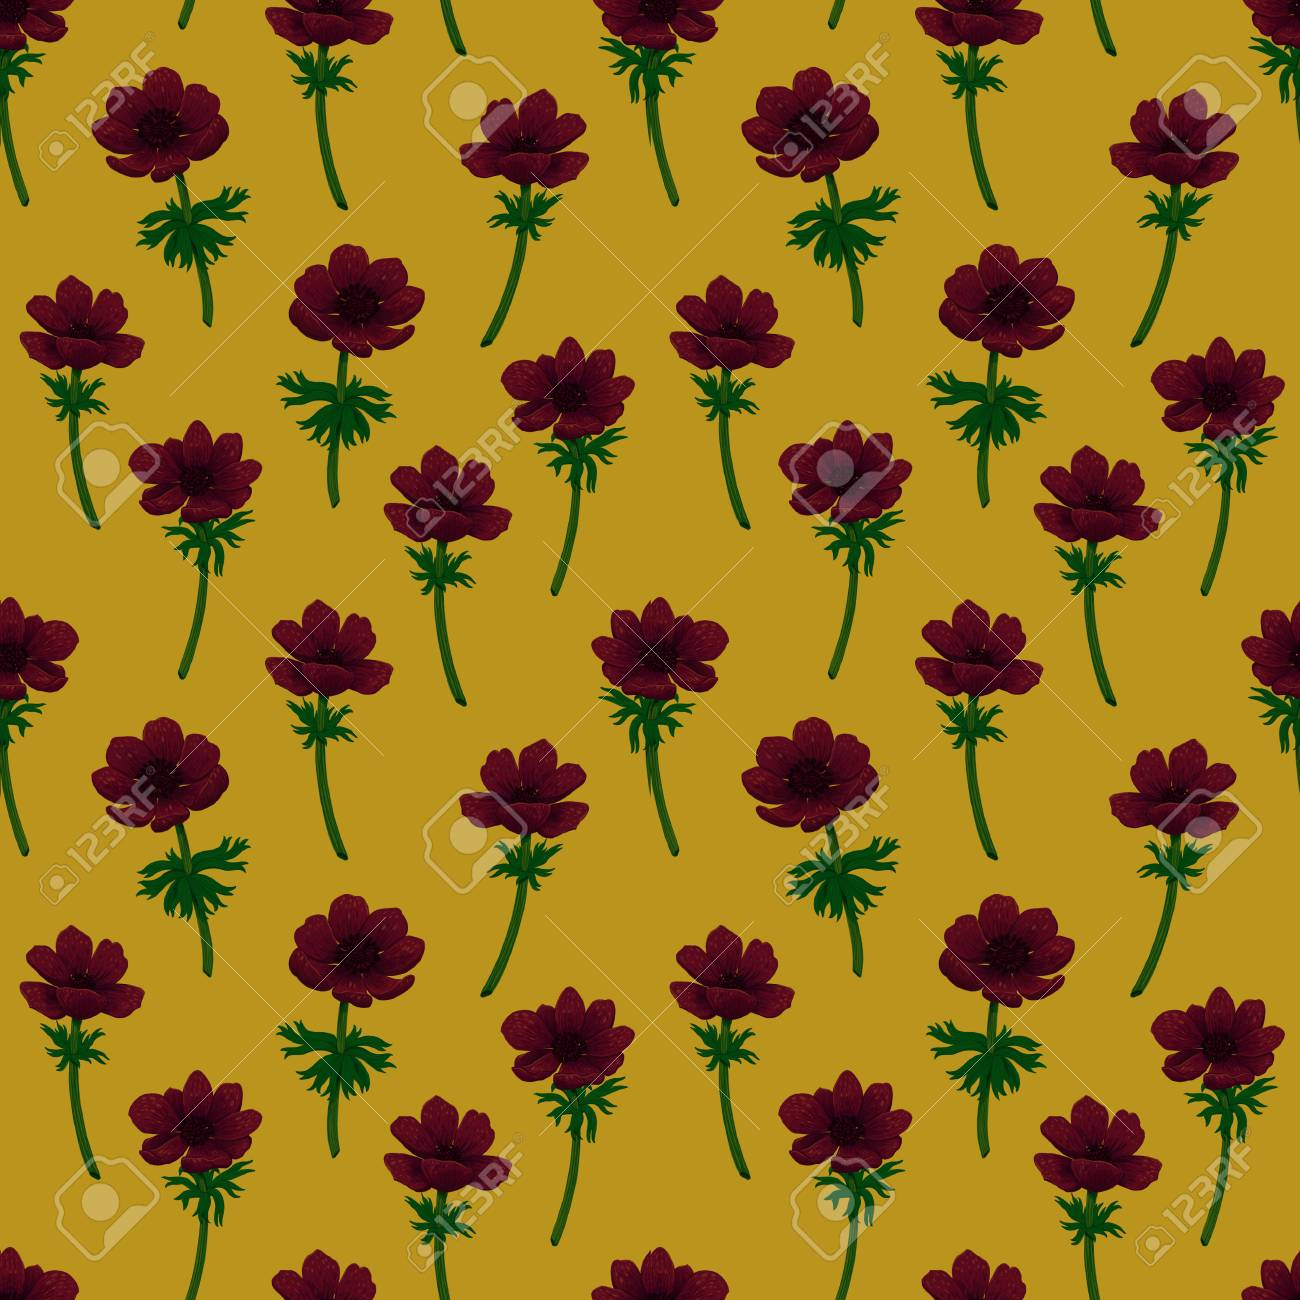 Floral Seamless Pattern Red Anemones Pattern On Mustard Yellow